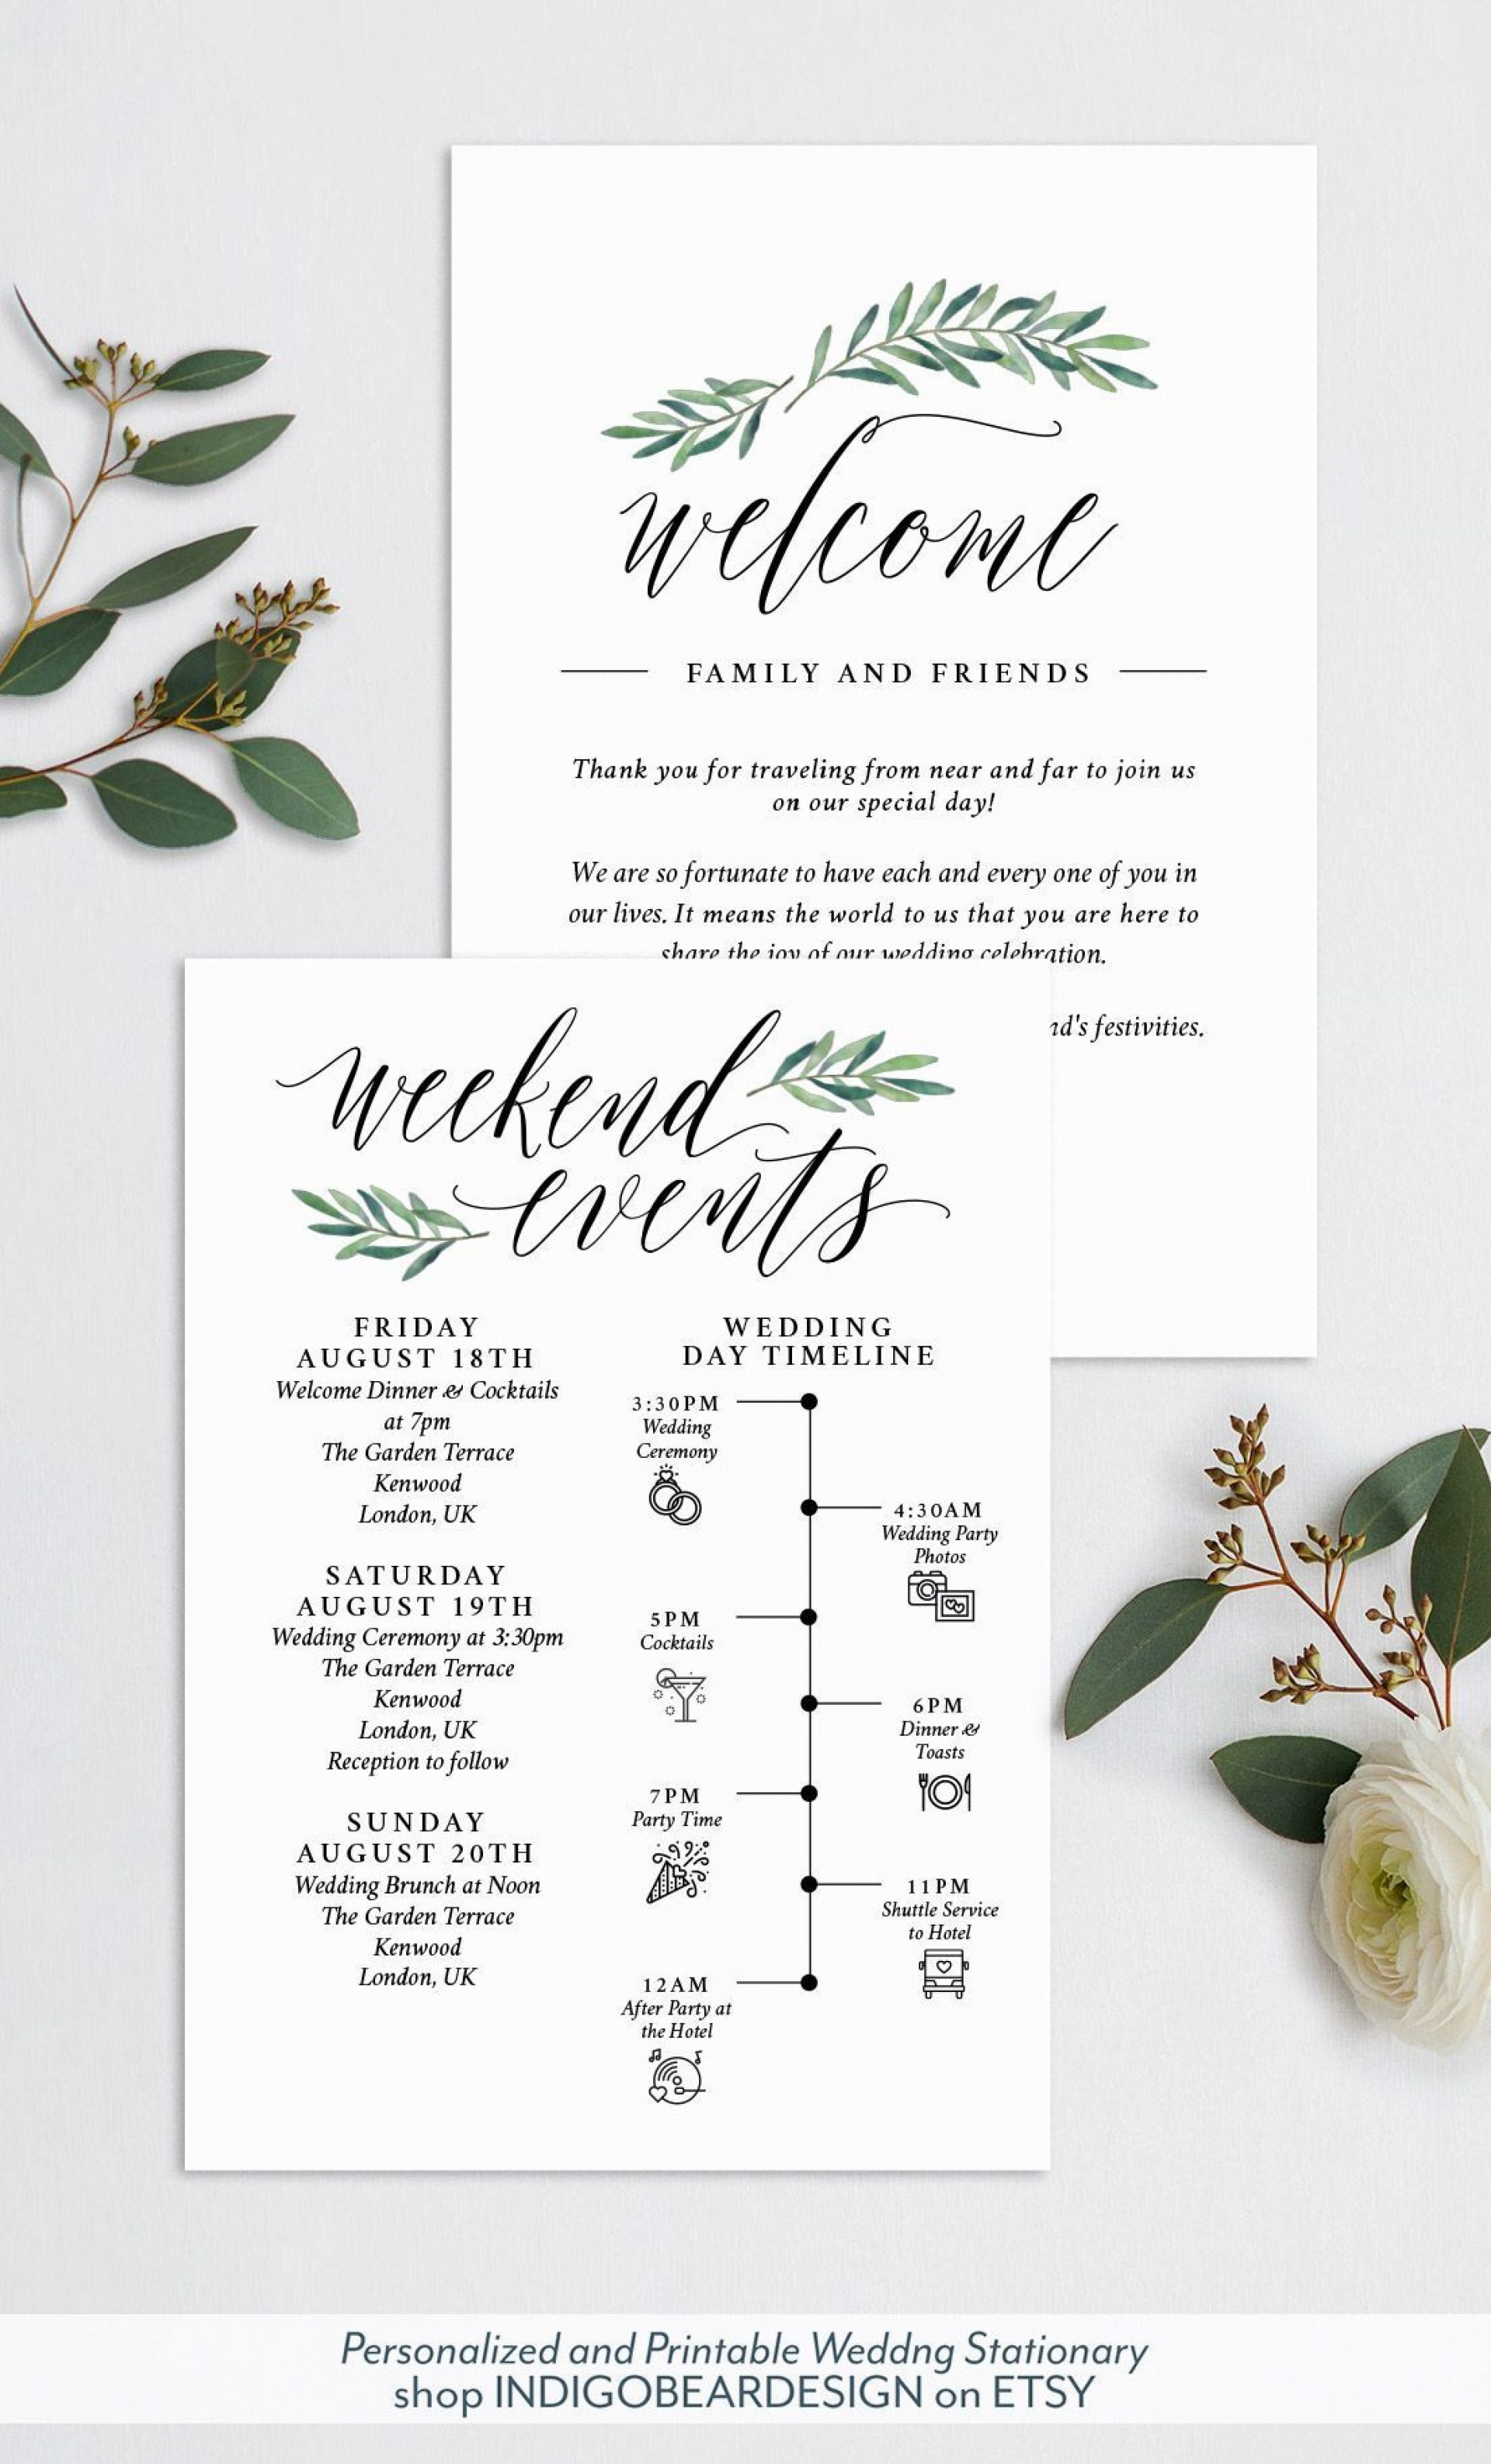 005 Wondrou Destination Wedding Welcome Letter And Itinerary Template High Resolution 1920